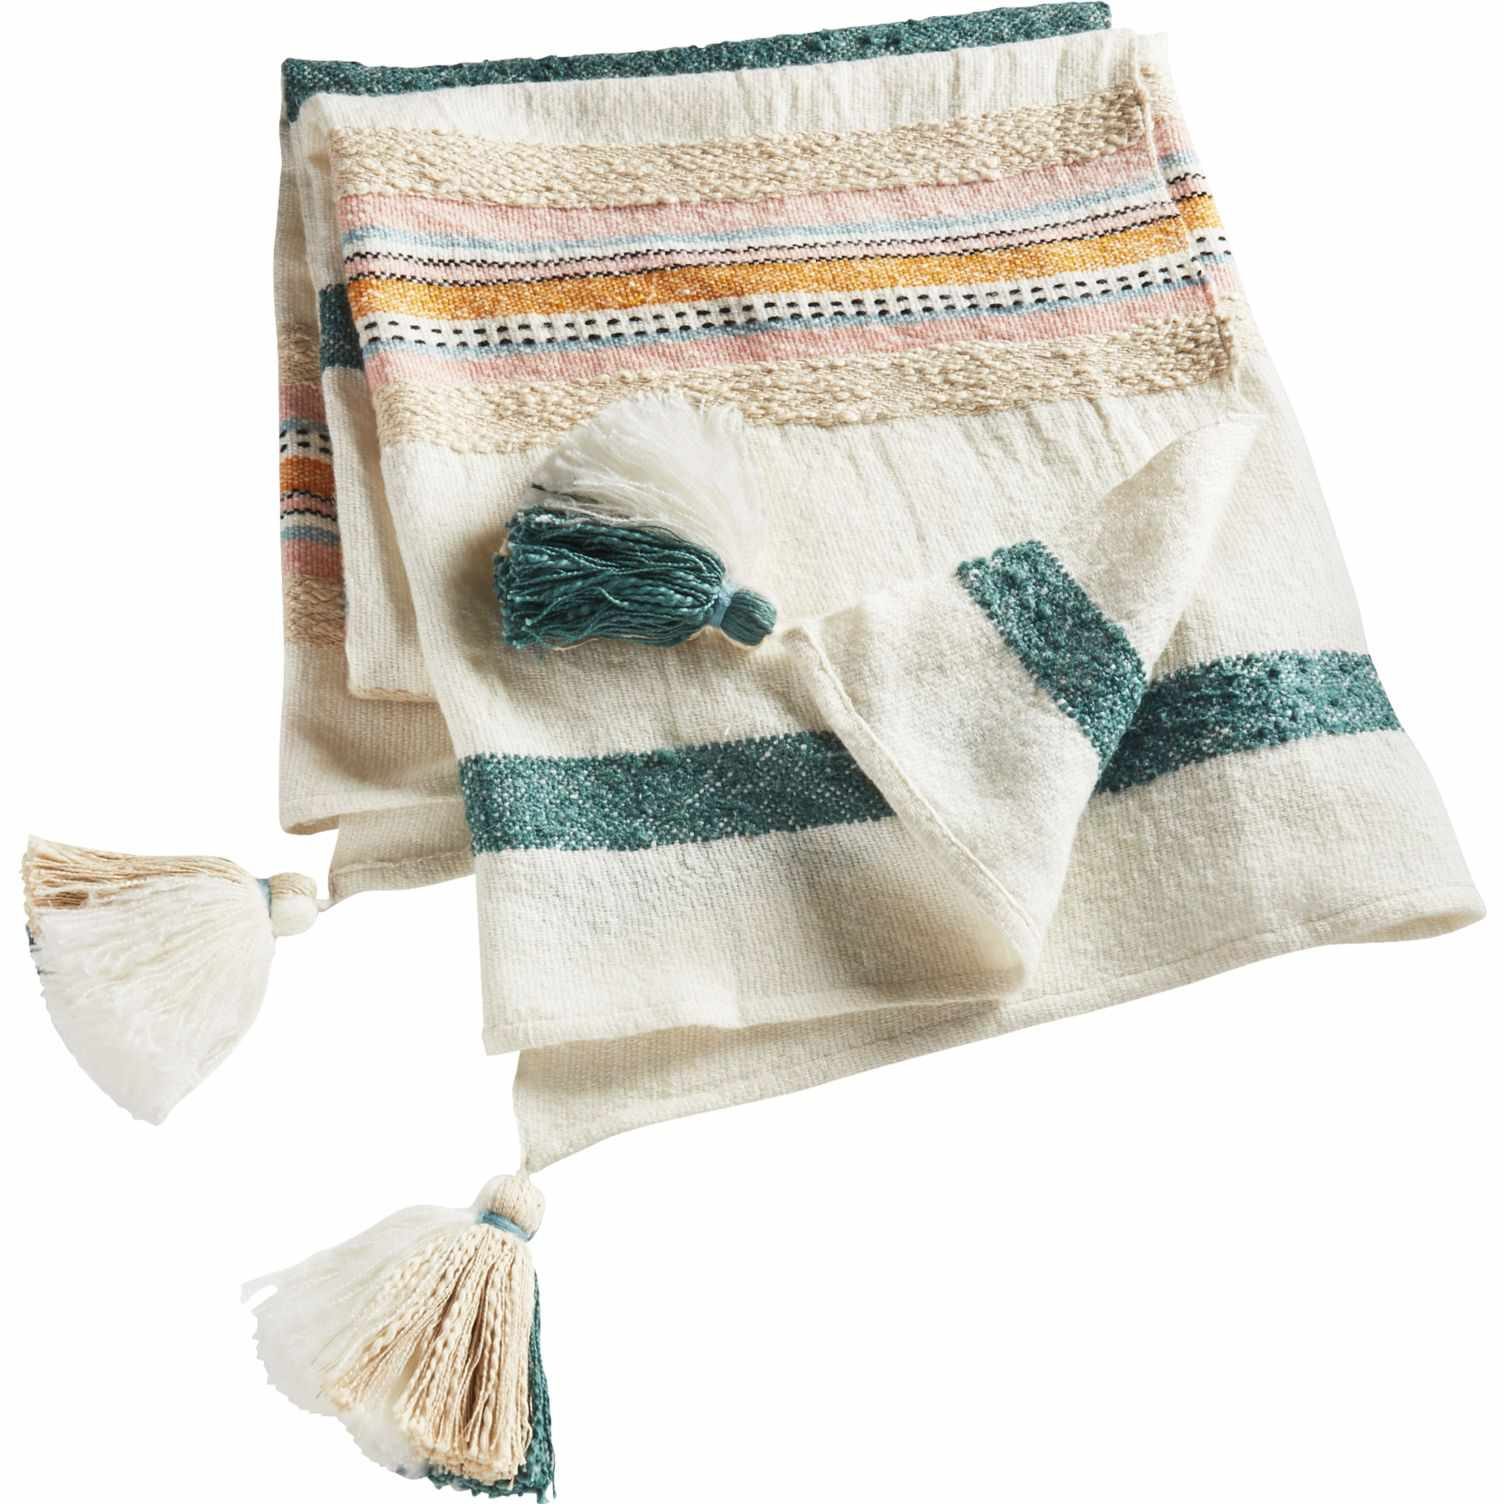 A white throw blanket with green, pink, and yellow stripes and tassels.